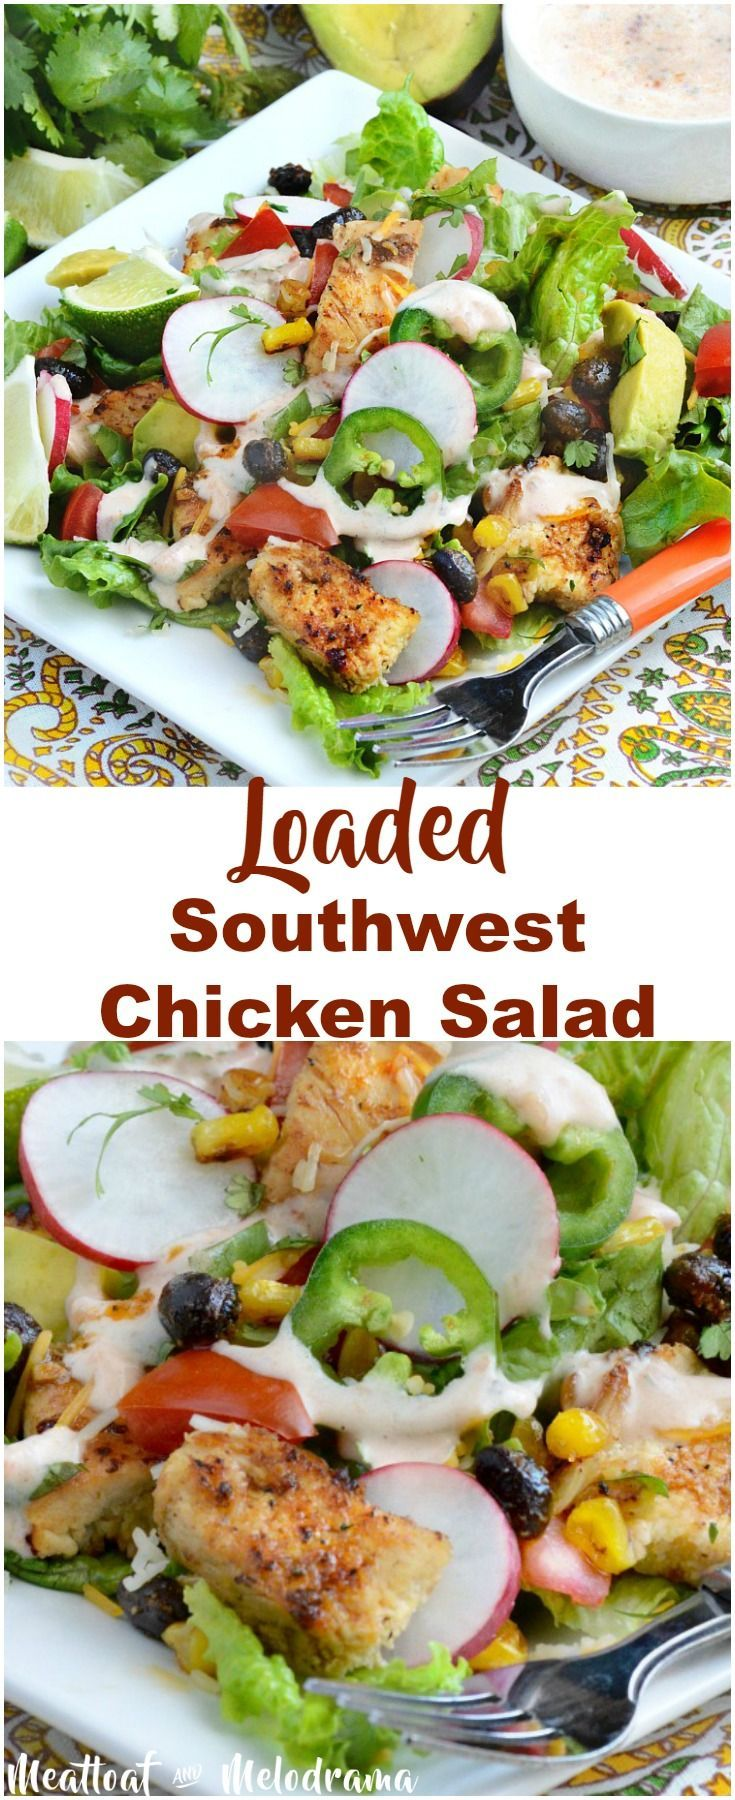 Loaded Southwest Chicken Salad - Spiced, seasoned chicken with black beans and roasted corn over fresh greens and veggies makes a quick and easy dinner or lunch! Top it with an easy salsa ranch dressing or eat it as it. from Meatloaf and Melodrama